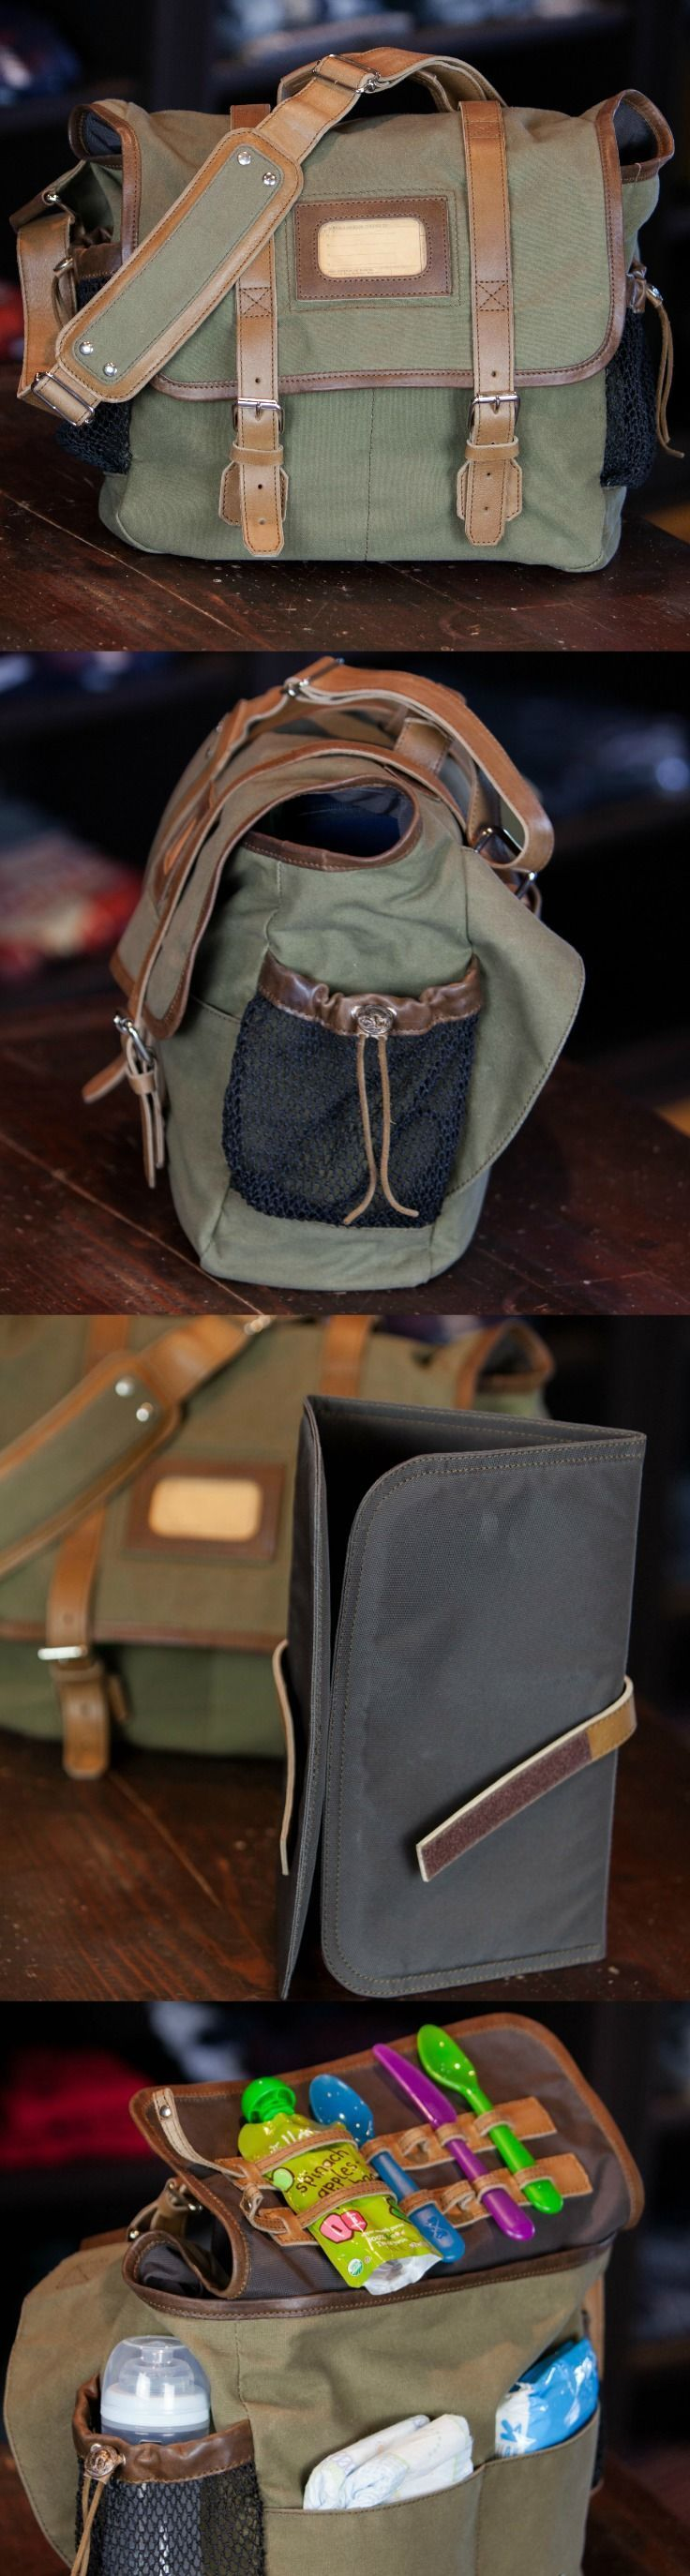 The manliest diaper bag you've ever seen. The Elkton waxed canvas men's diaper bag. Removable nylon changing pad, fish net bottle holders, adjustable leather strap. diaper bag for dad | diaper bags that don't suck